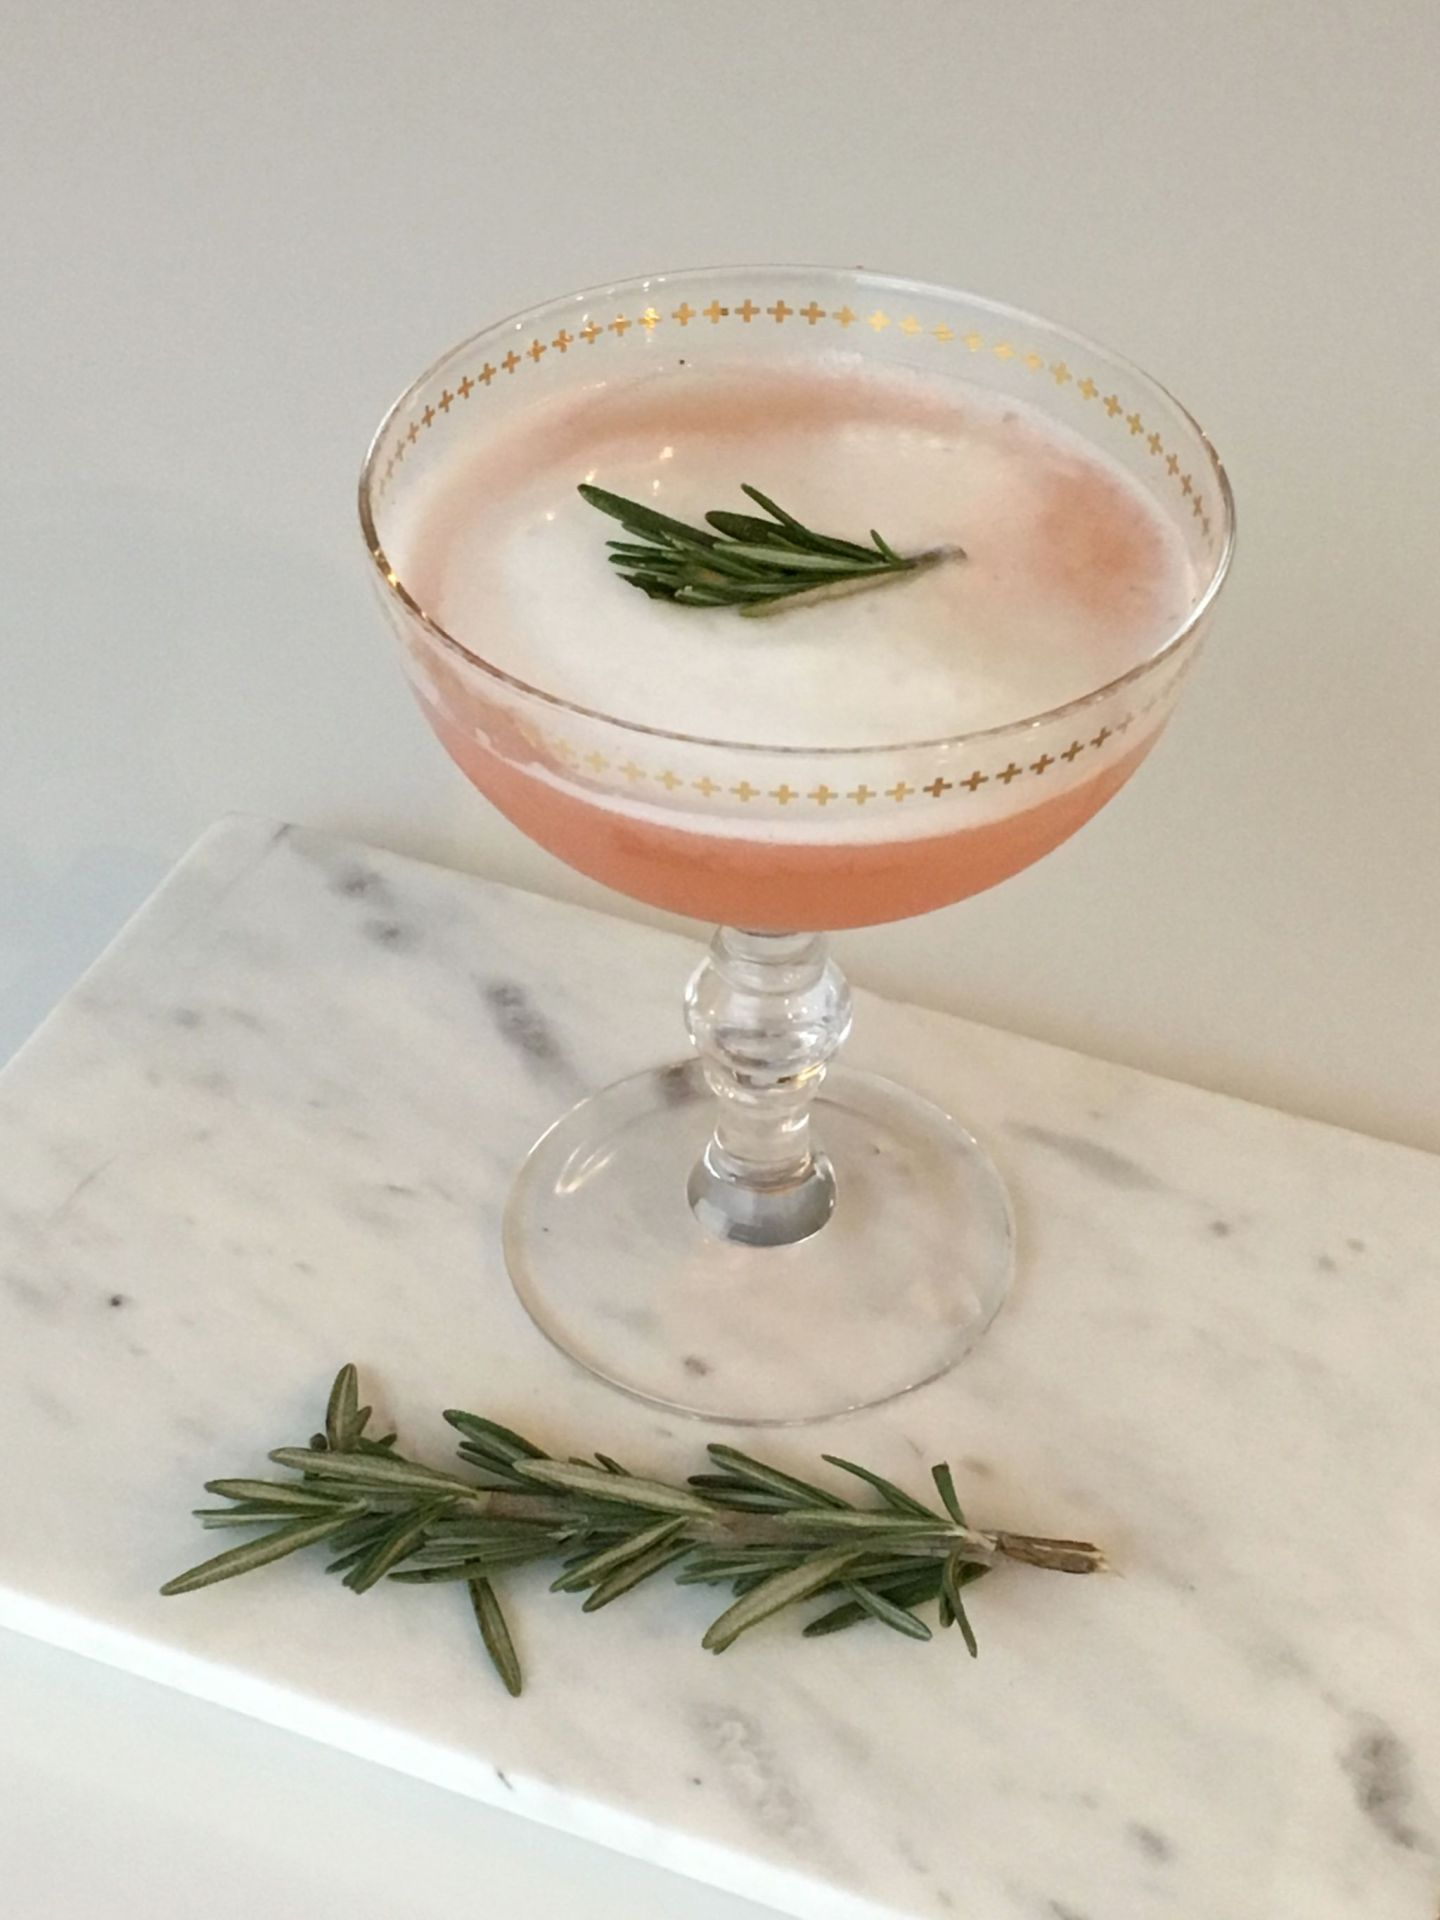 Rio Red Grapefruit and Rosemary Cocktail